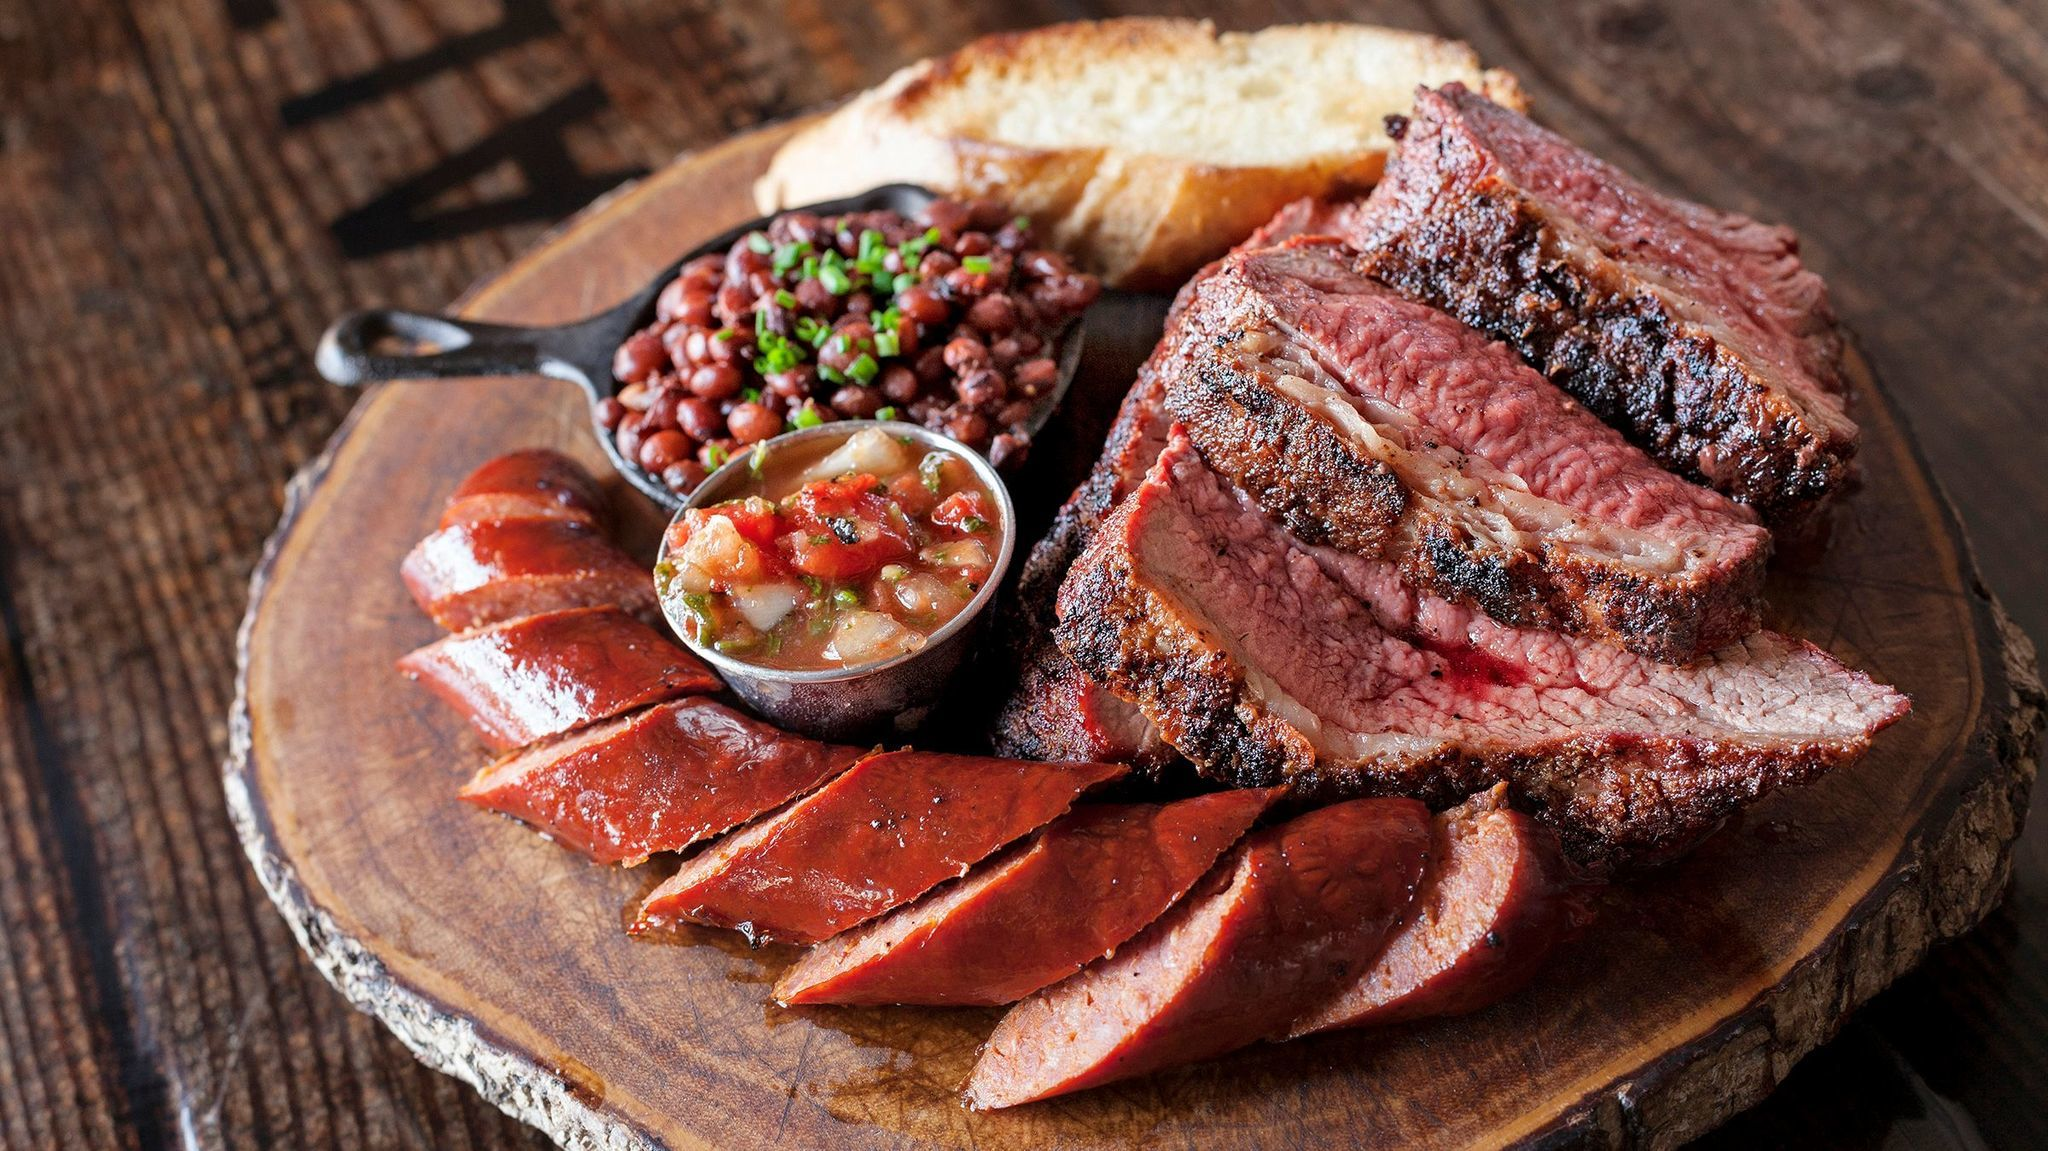 SeaSalt Woodfire Grill is the only restaurant in O.C. brave enough to tackle Santa Maria-style barbecue, which cooks tri-tip over temperamental oak logs.